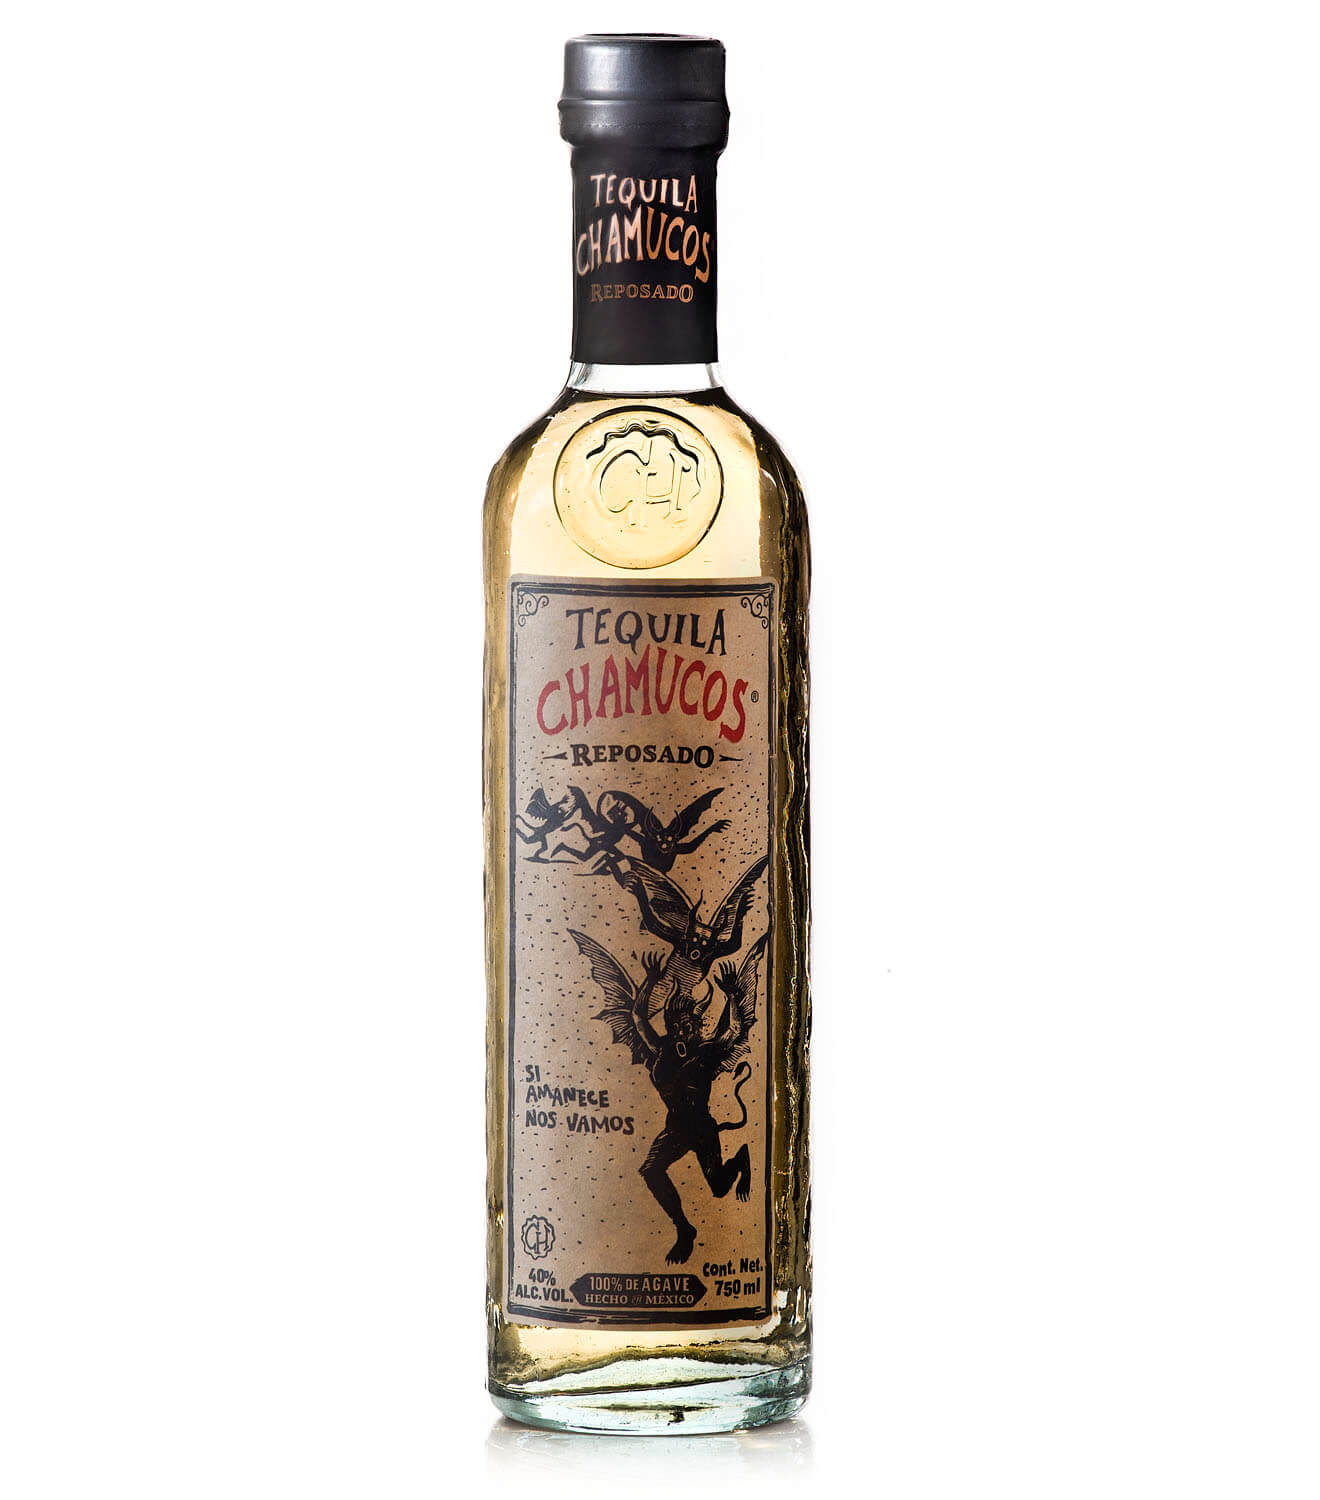 Tequila Chamucos Reposado, bottle on white